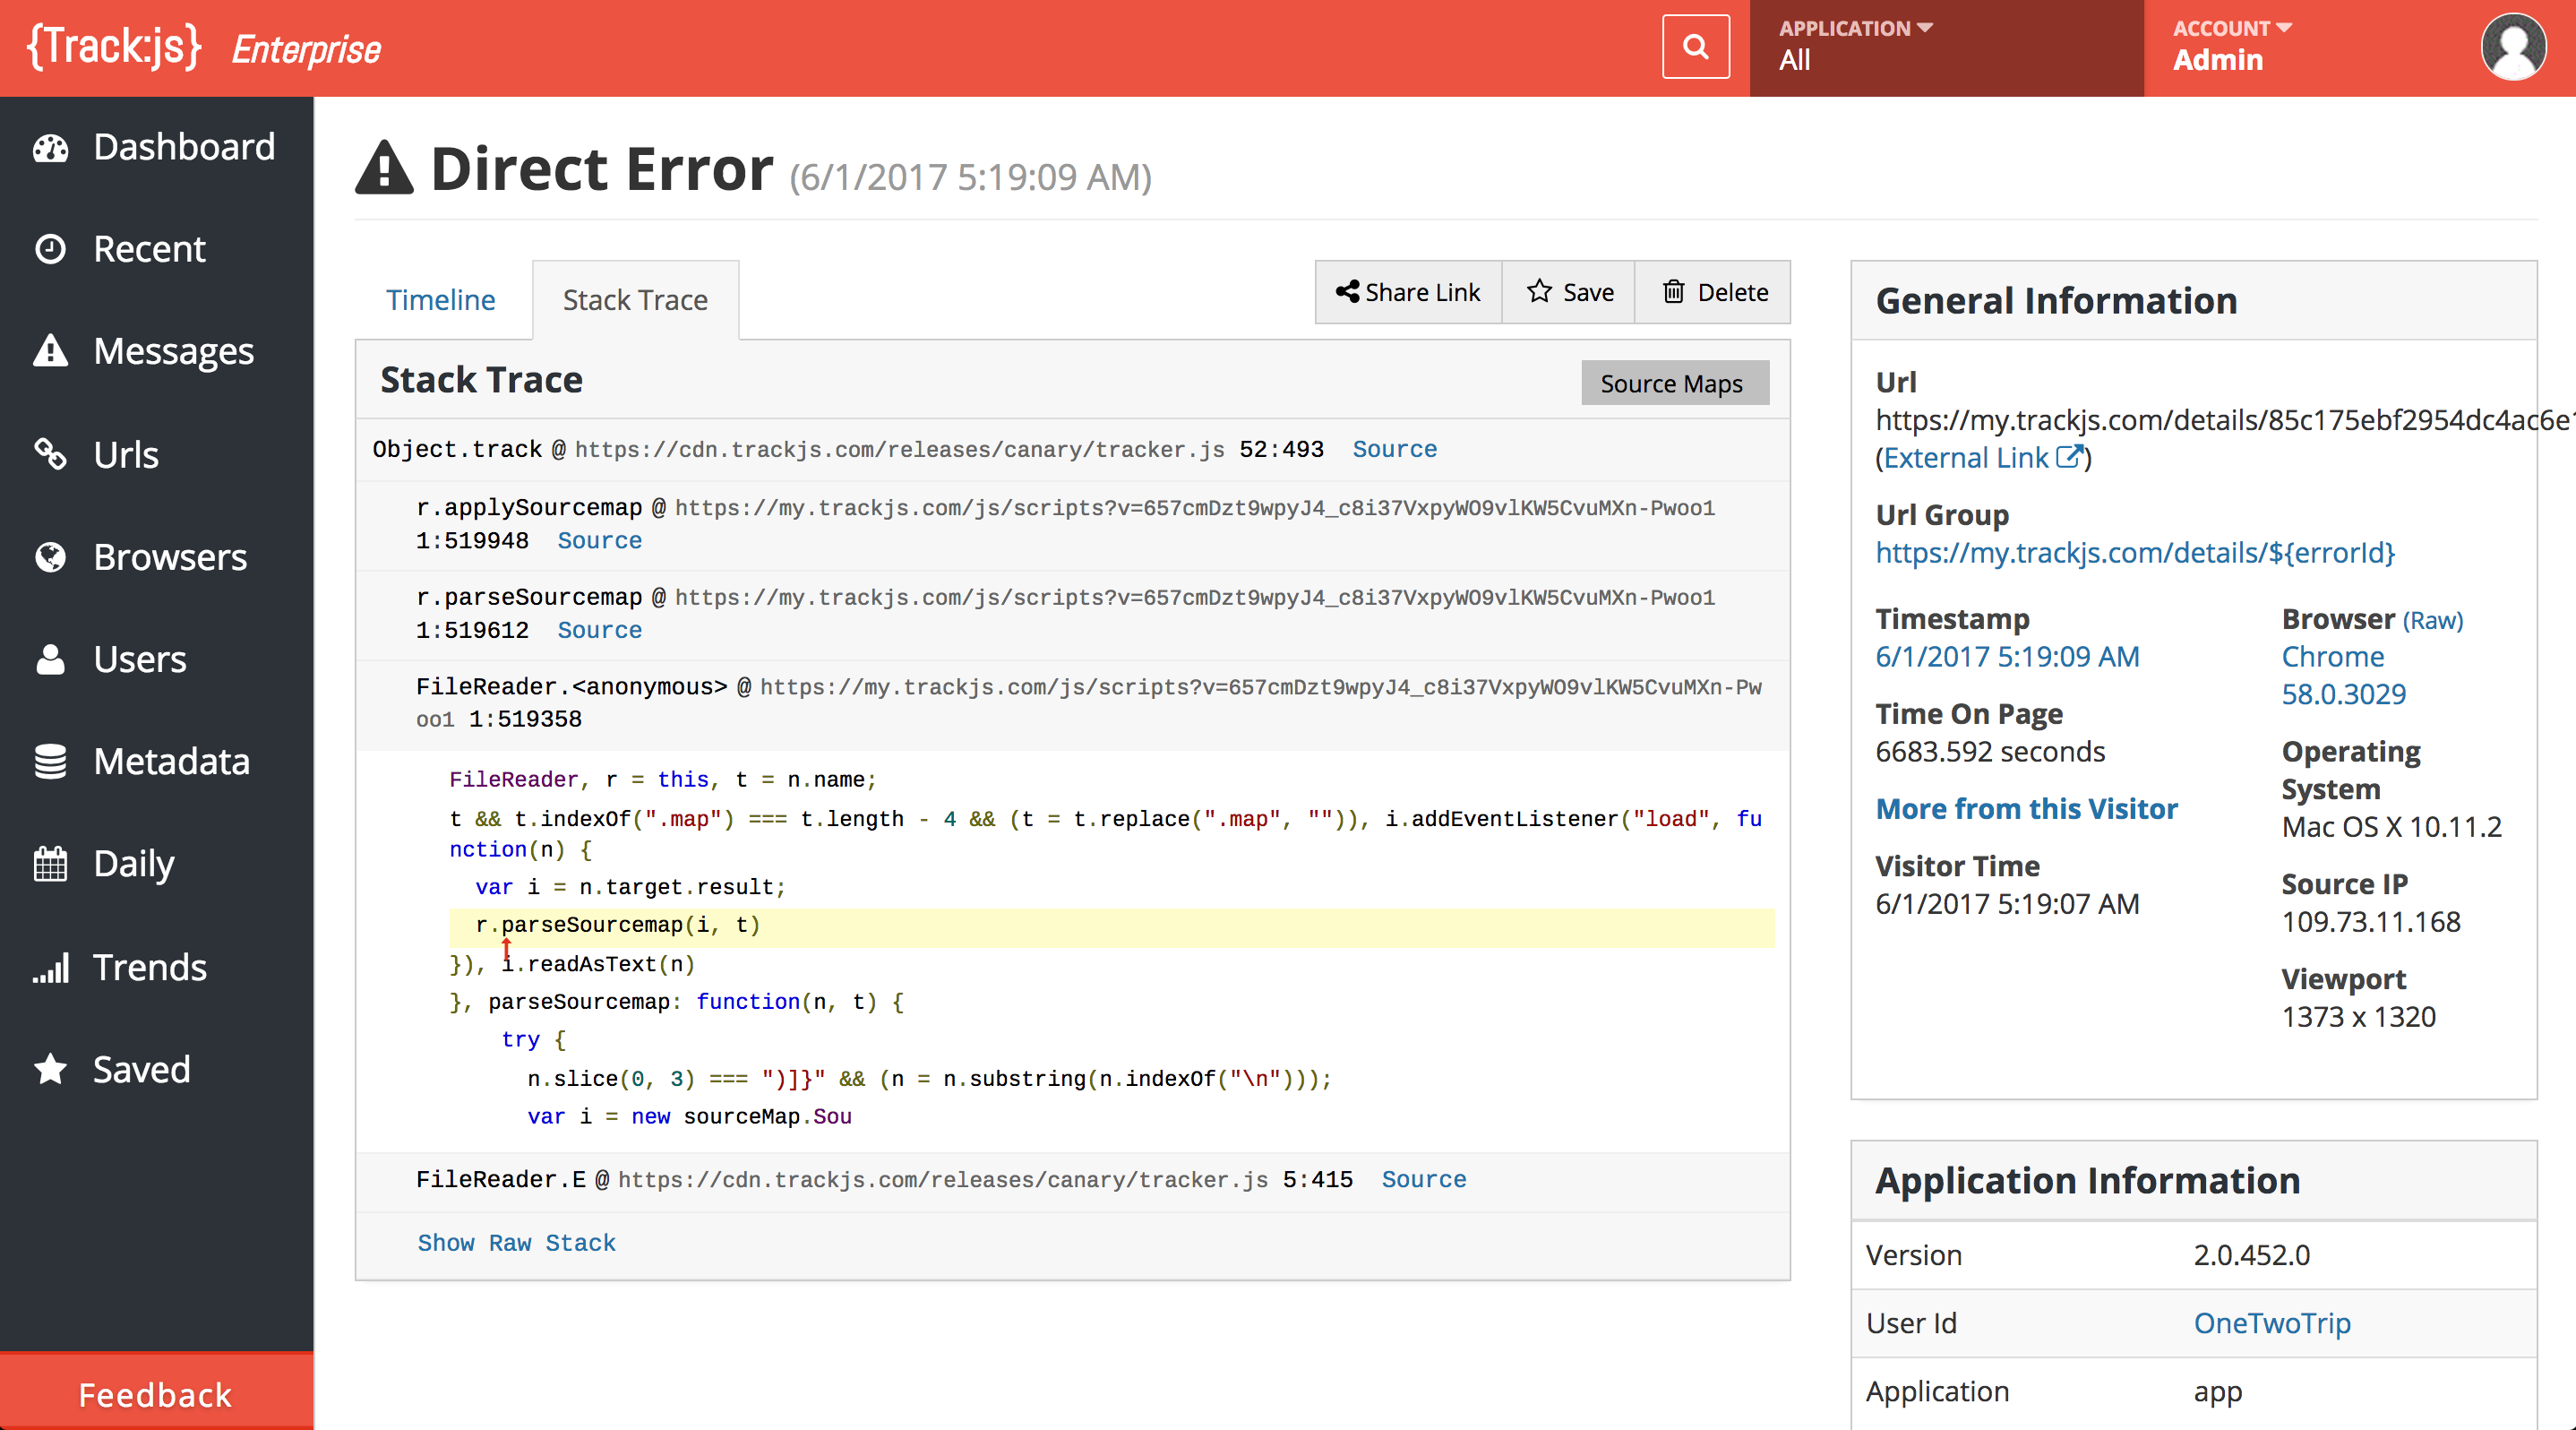 Full stack traces with most errors, including async frames, source maps, and inline source code fragments.